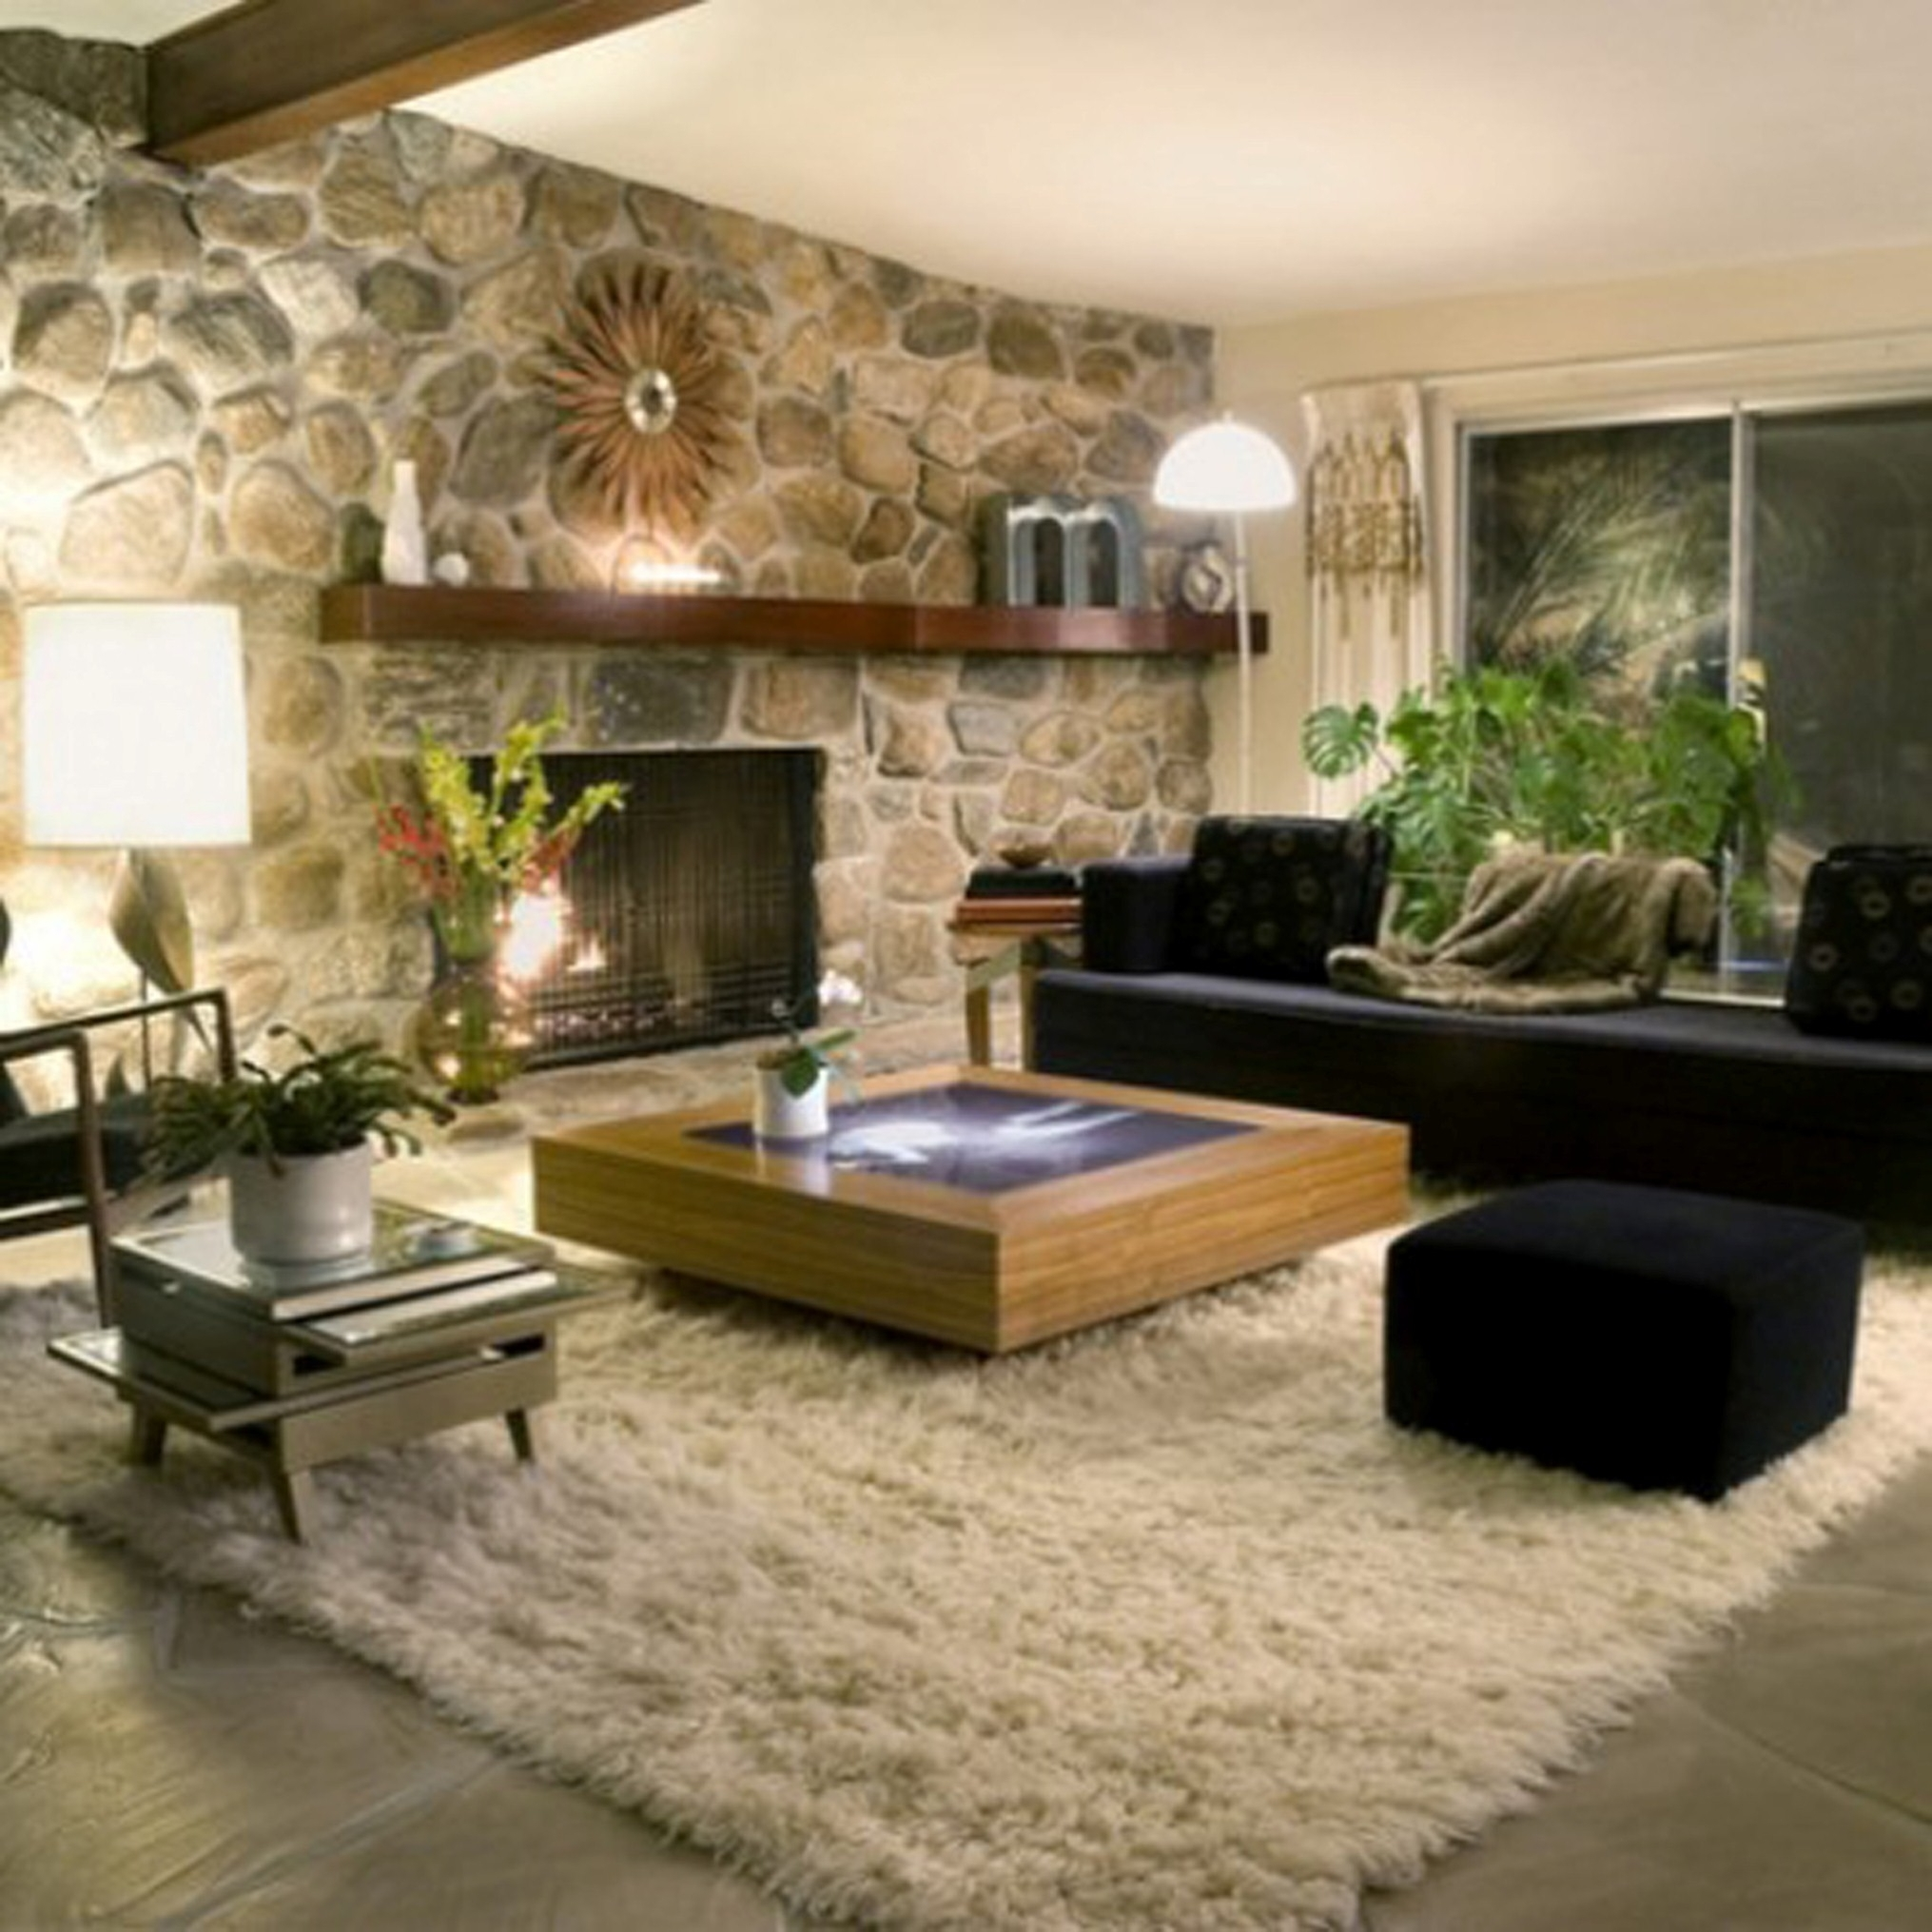 Modern Living Room Decoration With Sweet Black Fabric Sofa Design Even Charming Natural Stone Wall Decor (View 24 of 30)